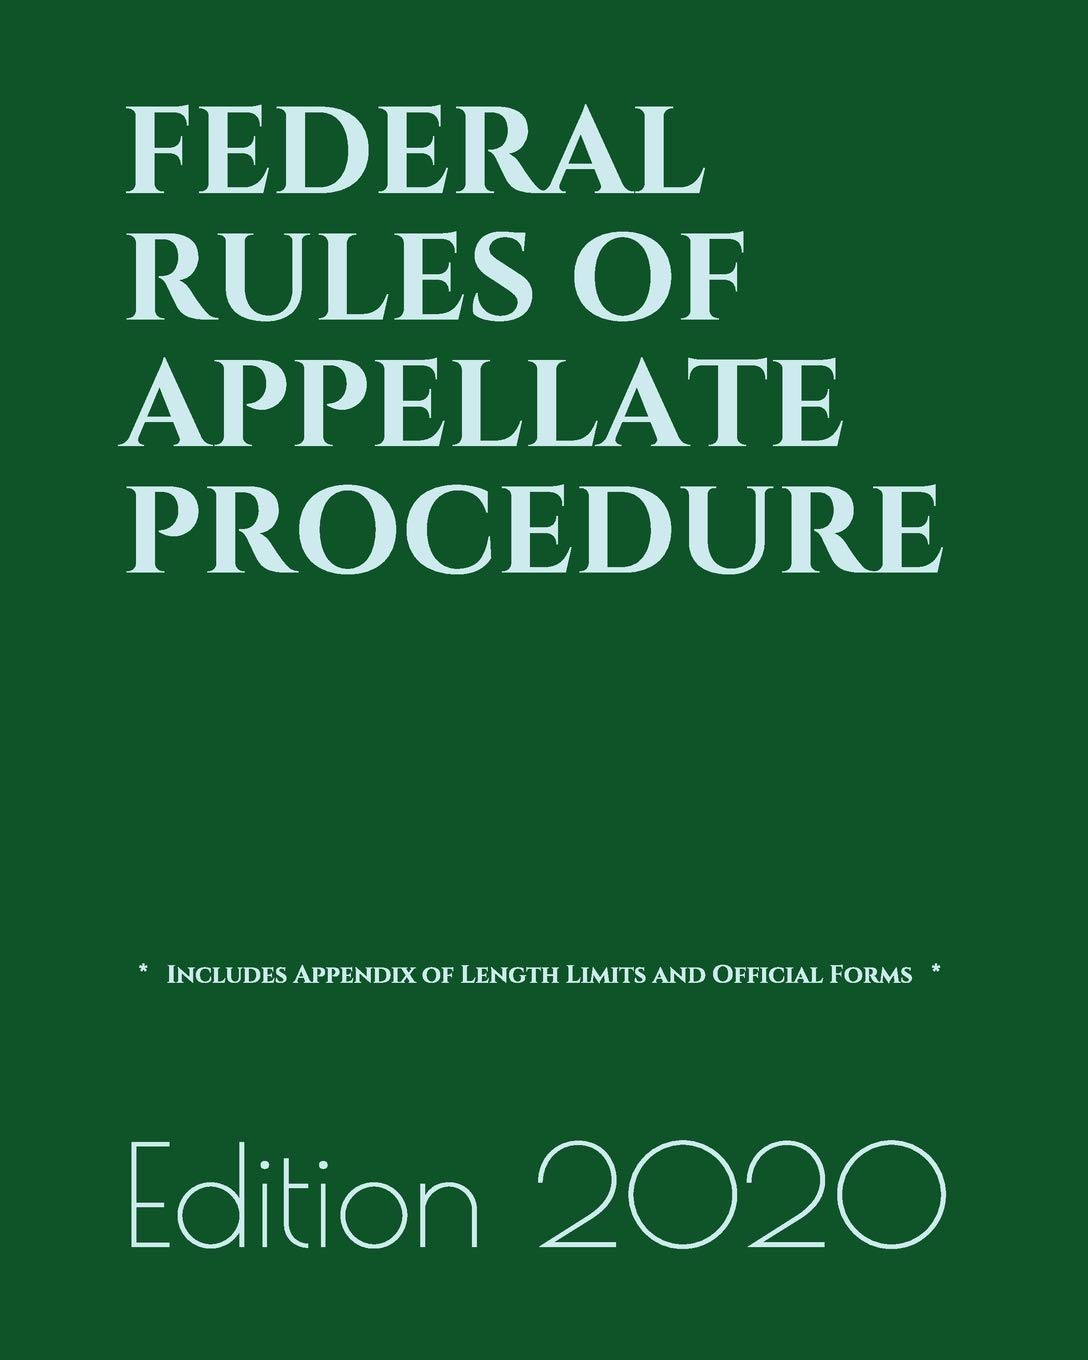 FEDERAL RULES OF APPELLATE PROCEDURE: Includes Appendix of Length Limits and Official Forms  